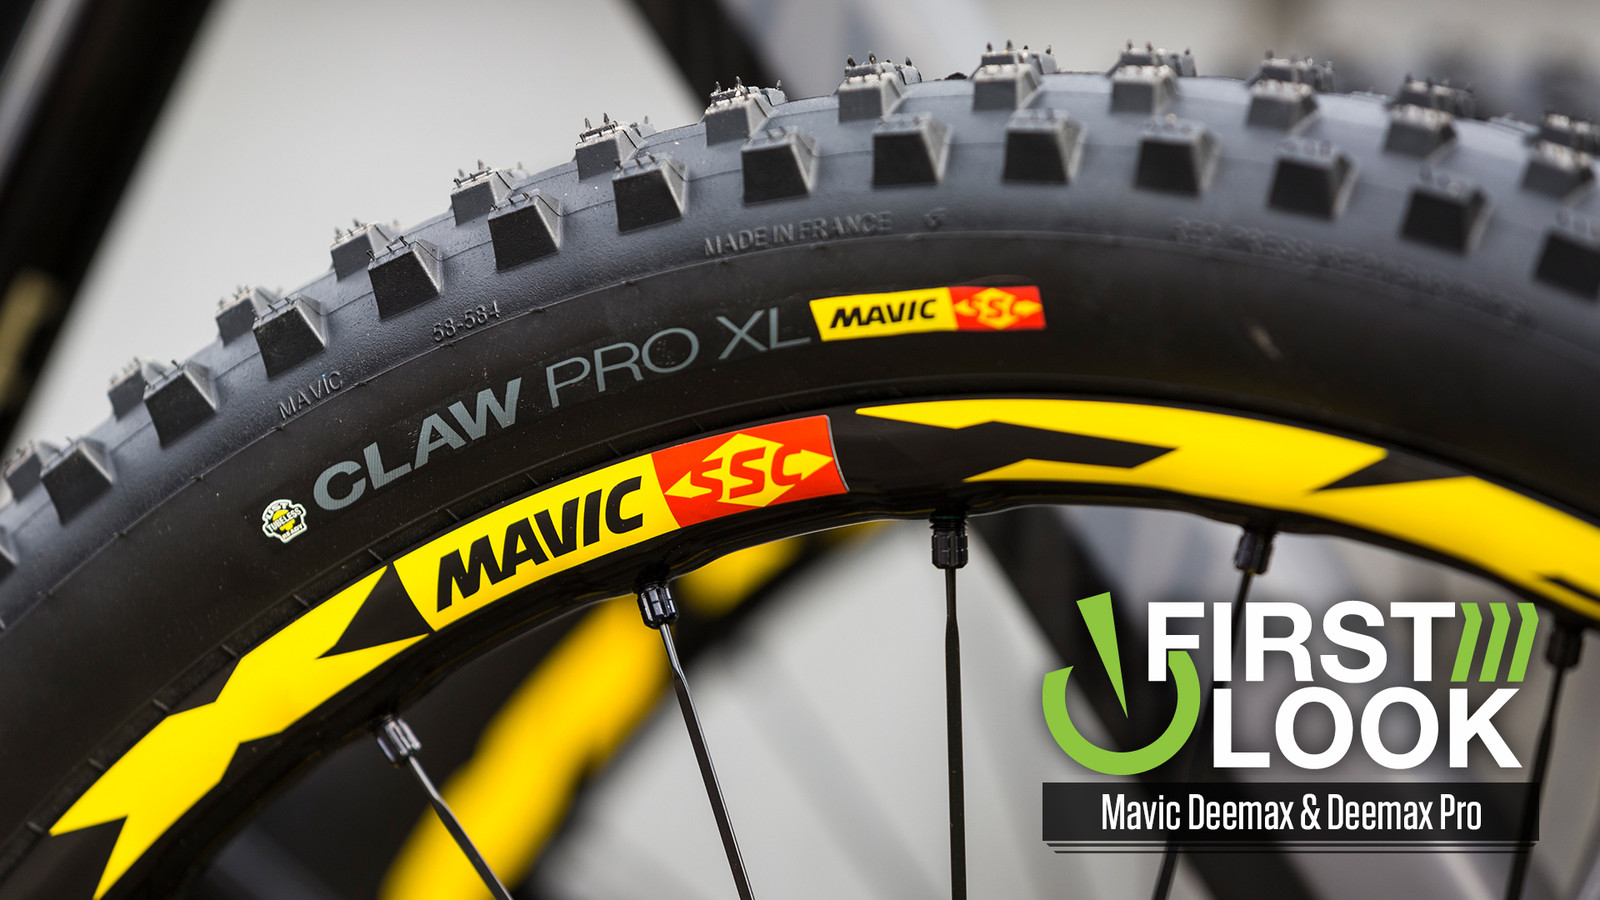 b3d5c8d2585 Mavic Introduces the 2018 Deemax and Deemax Pro Wheels - Mountain ...